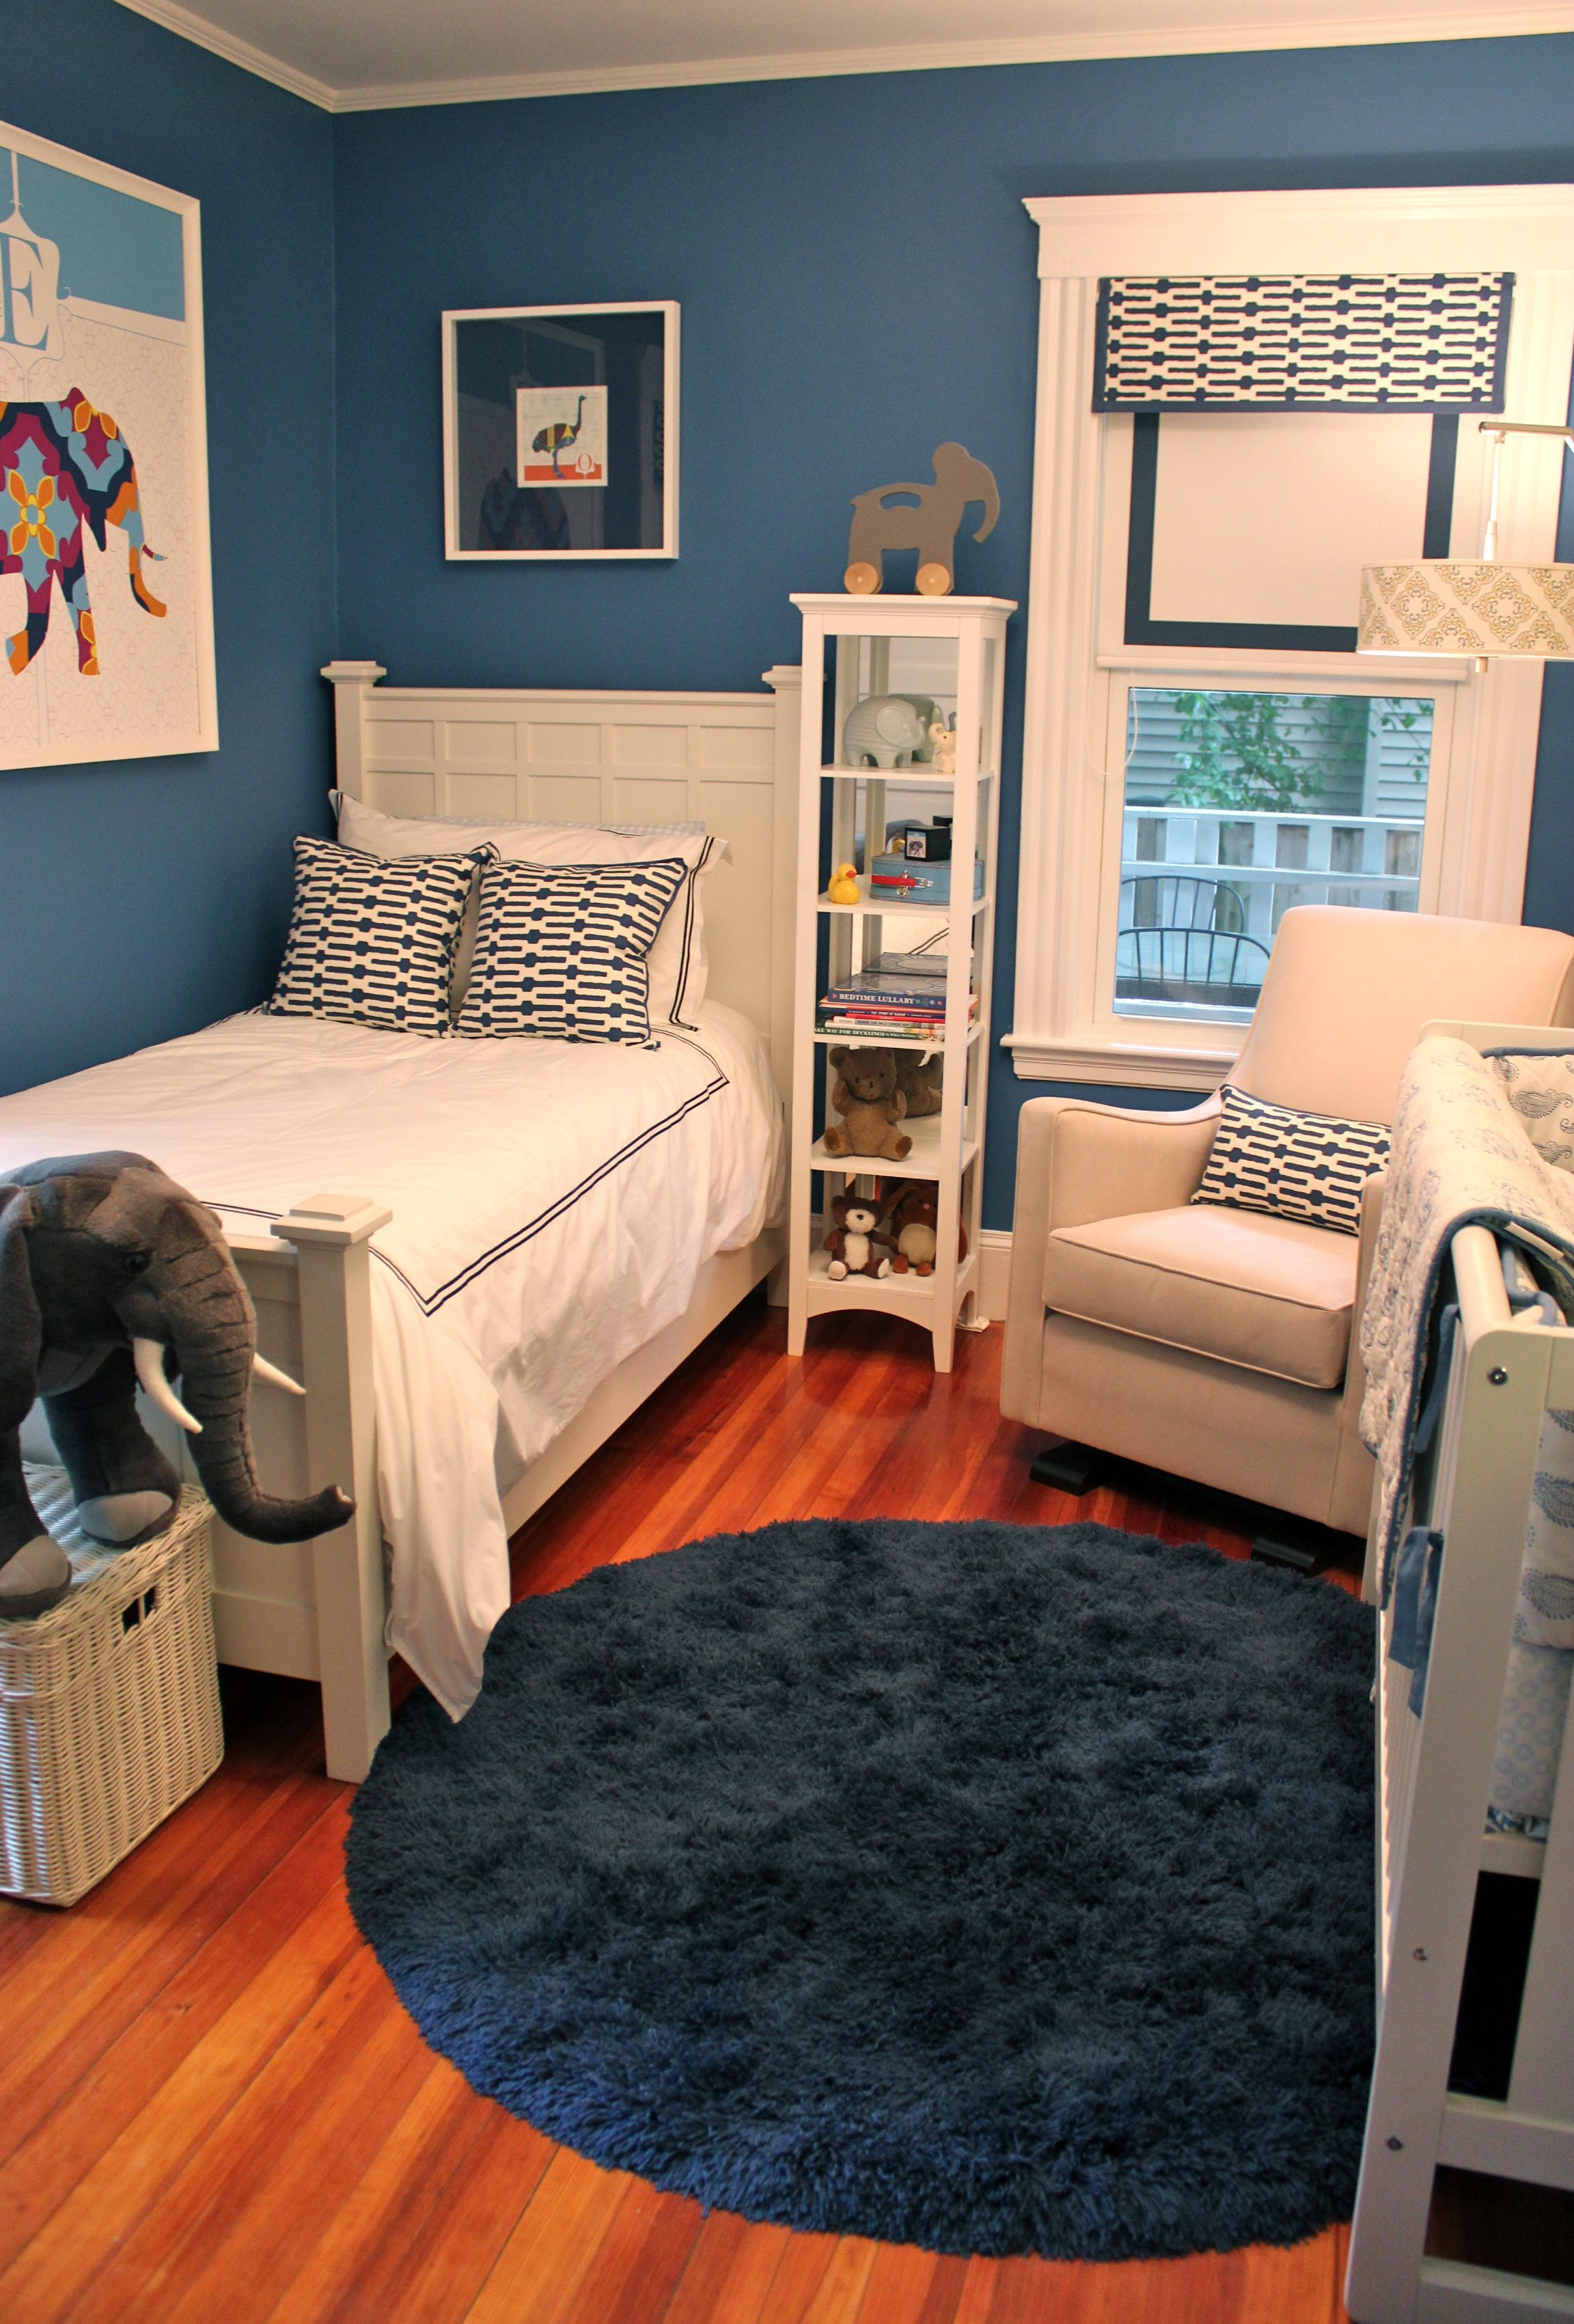 10 Boy Bedroom Ideas Small Rooms Most Stylish and Gorgeous images